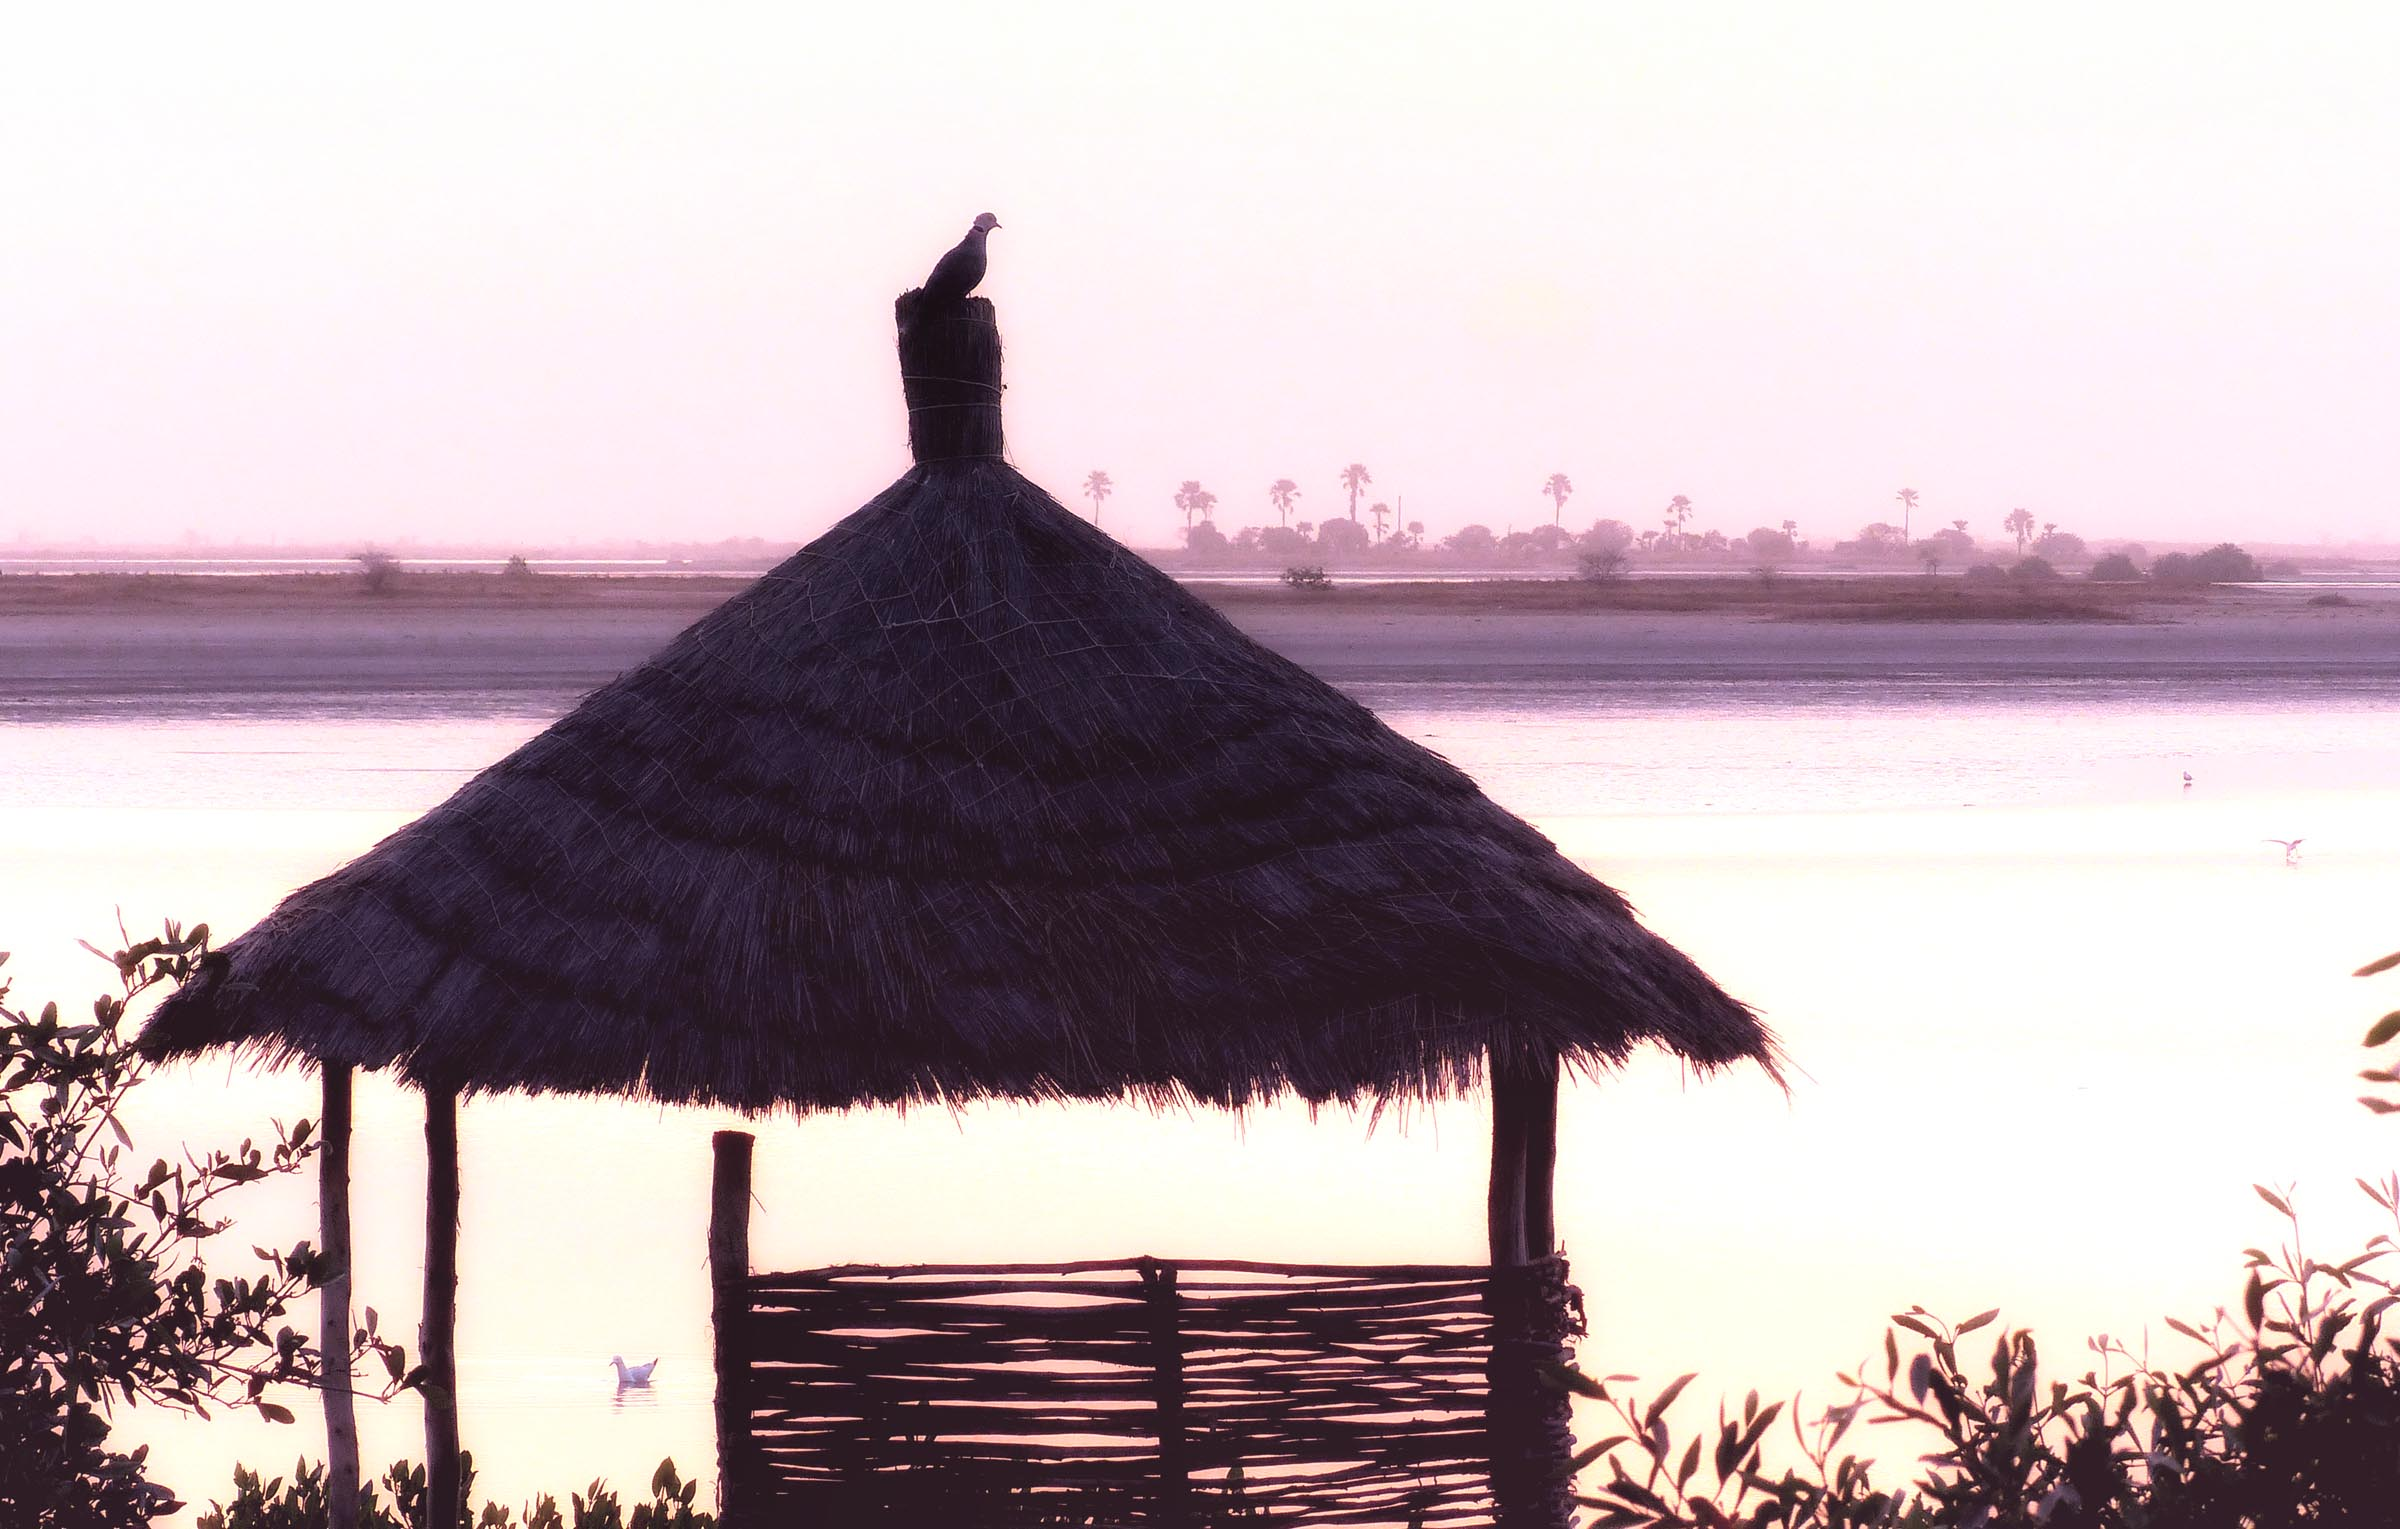 Bird on a thatch roof at sunrise